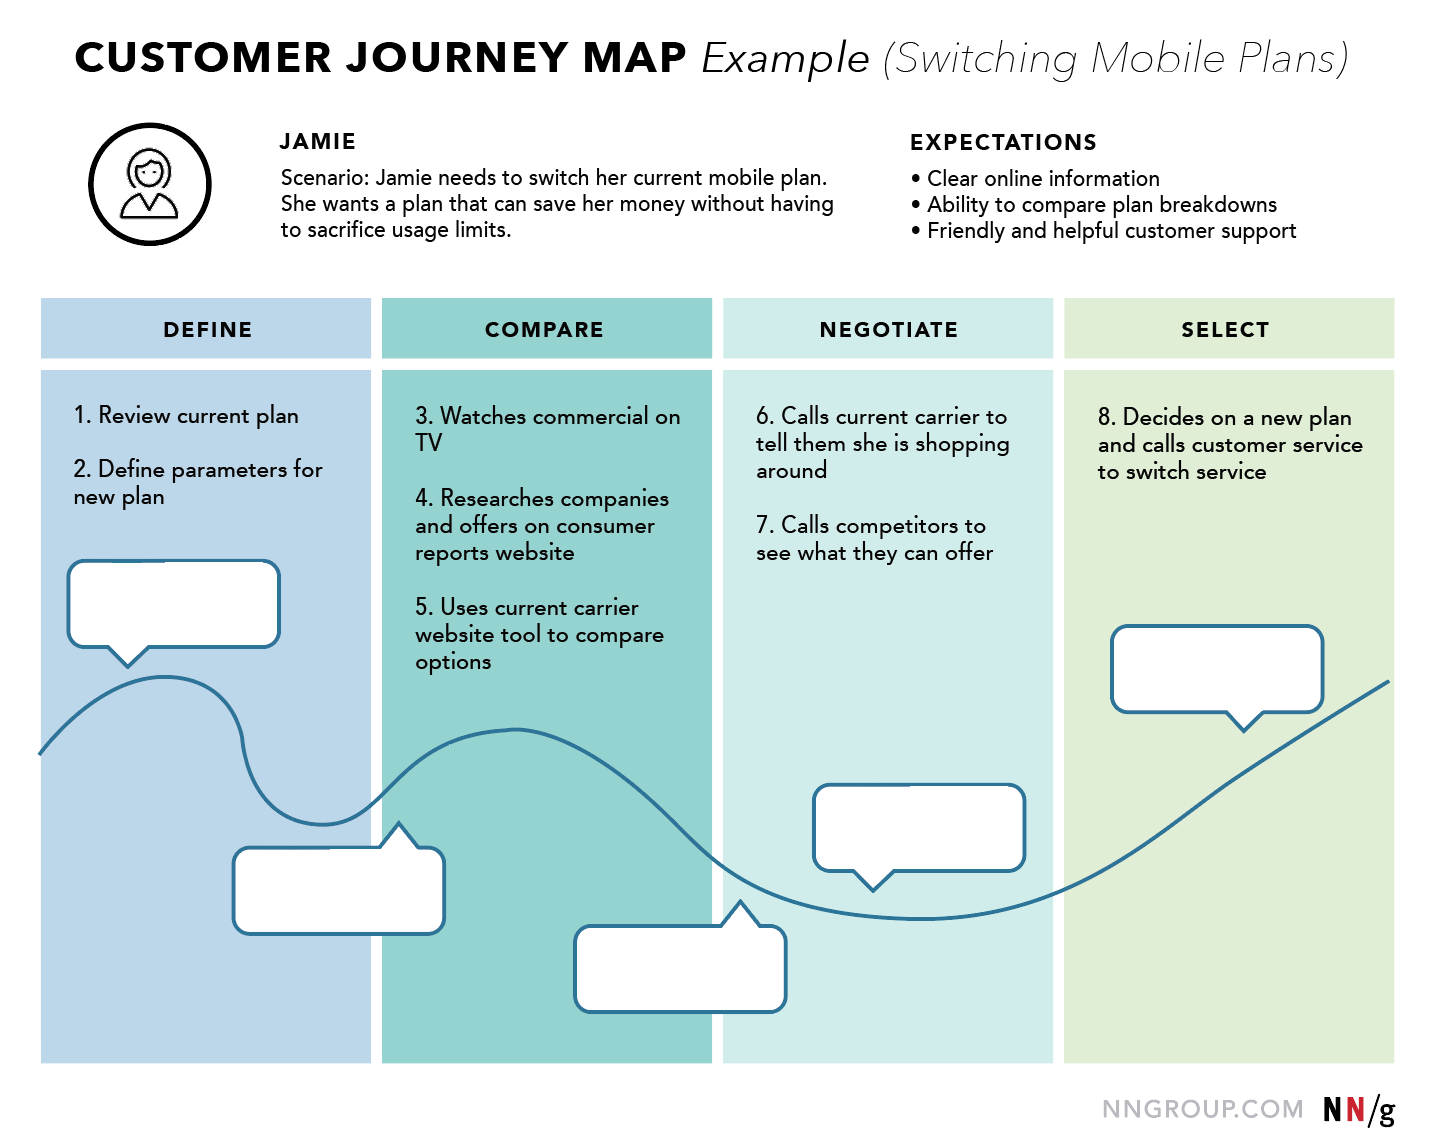 MAPPING methods - Experience mapping, journey mapping, and empathy mapping compared.